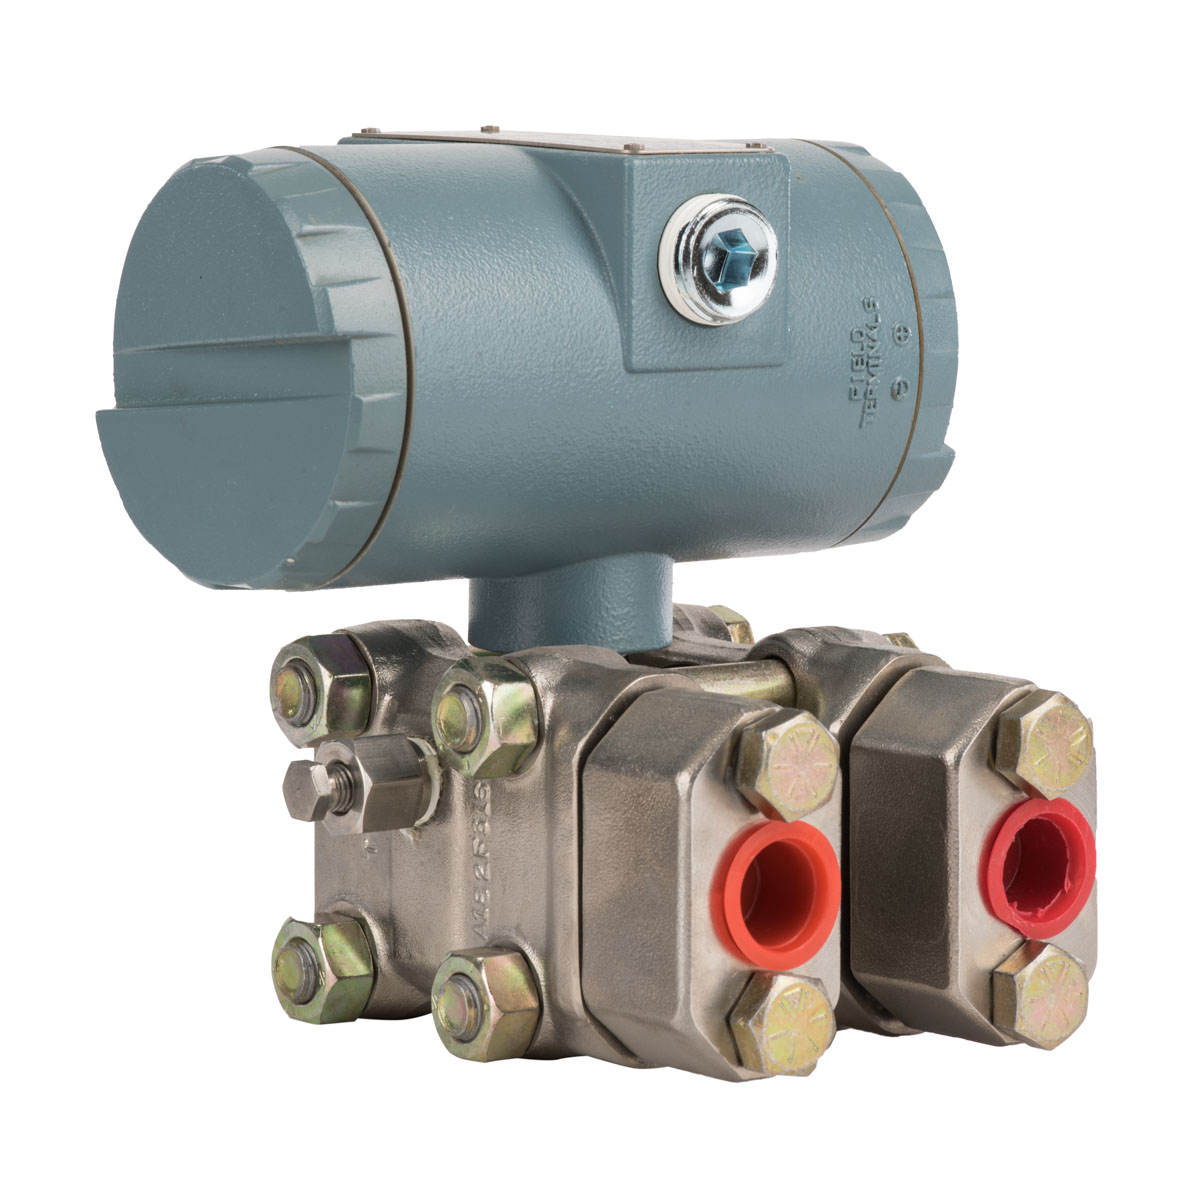 Foxboro 863D Intelligent Differential Pressure Transmitter